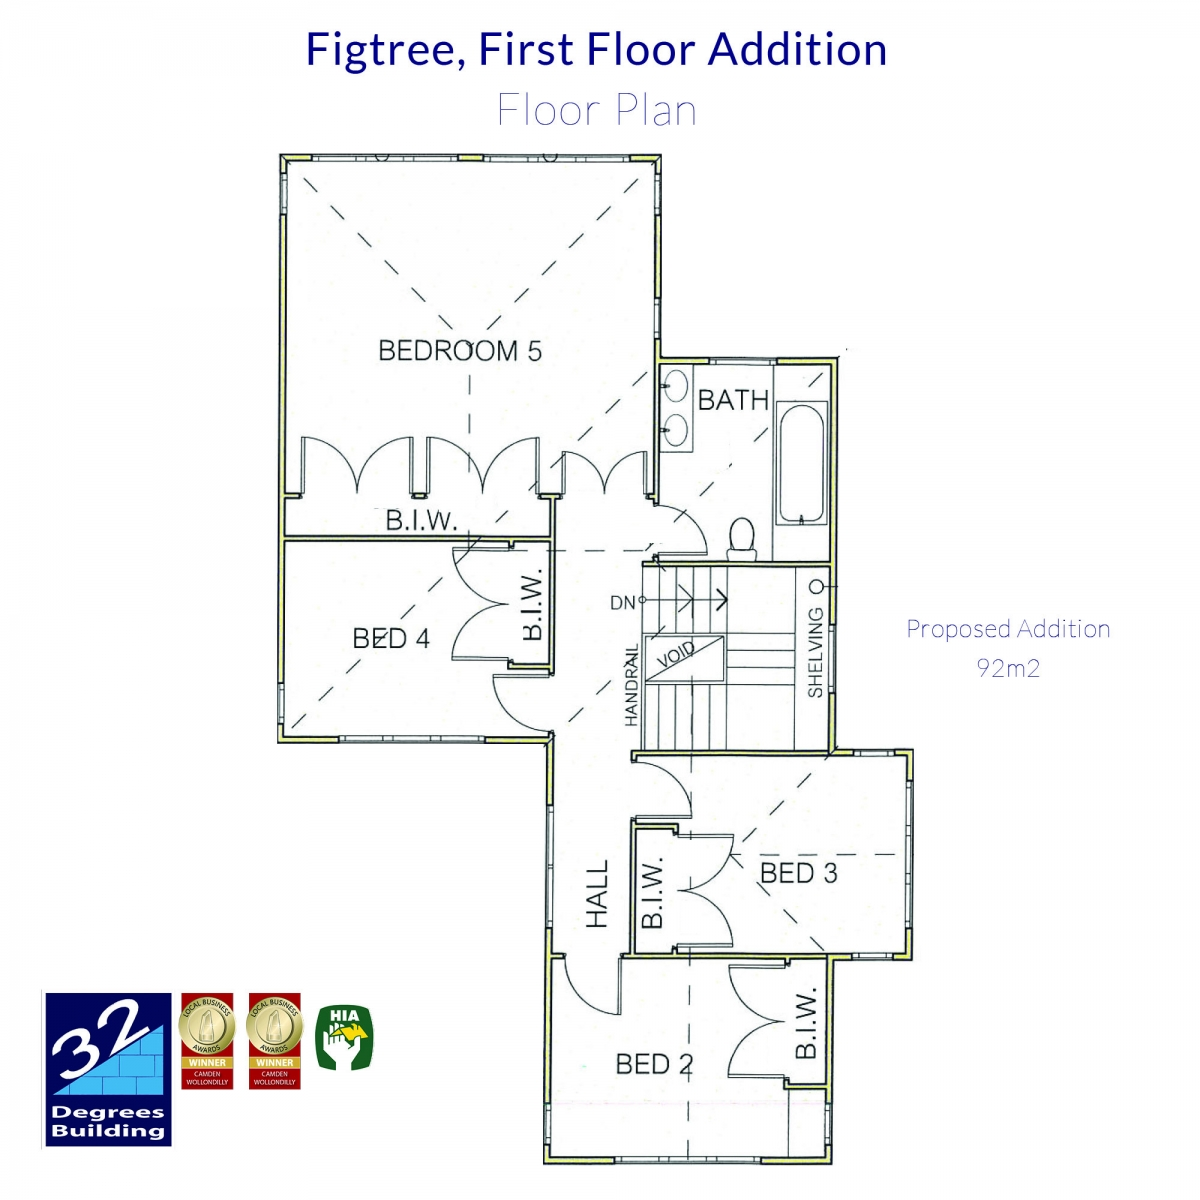 Floor Plan - First Floor Addition Figtree (1)